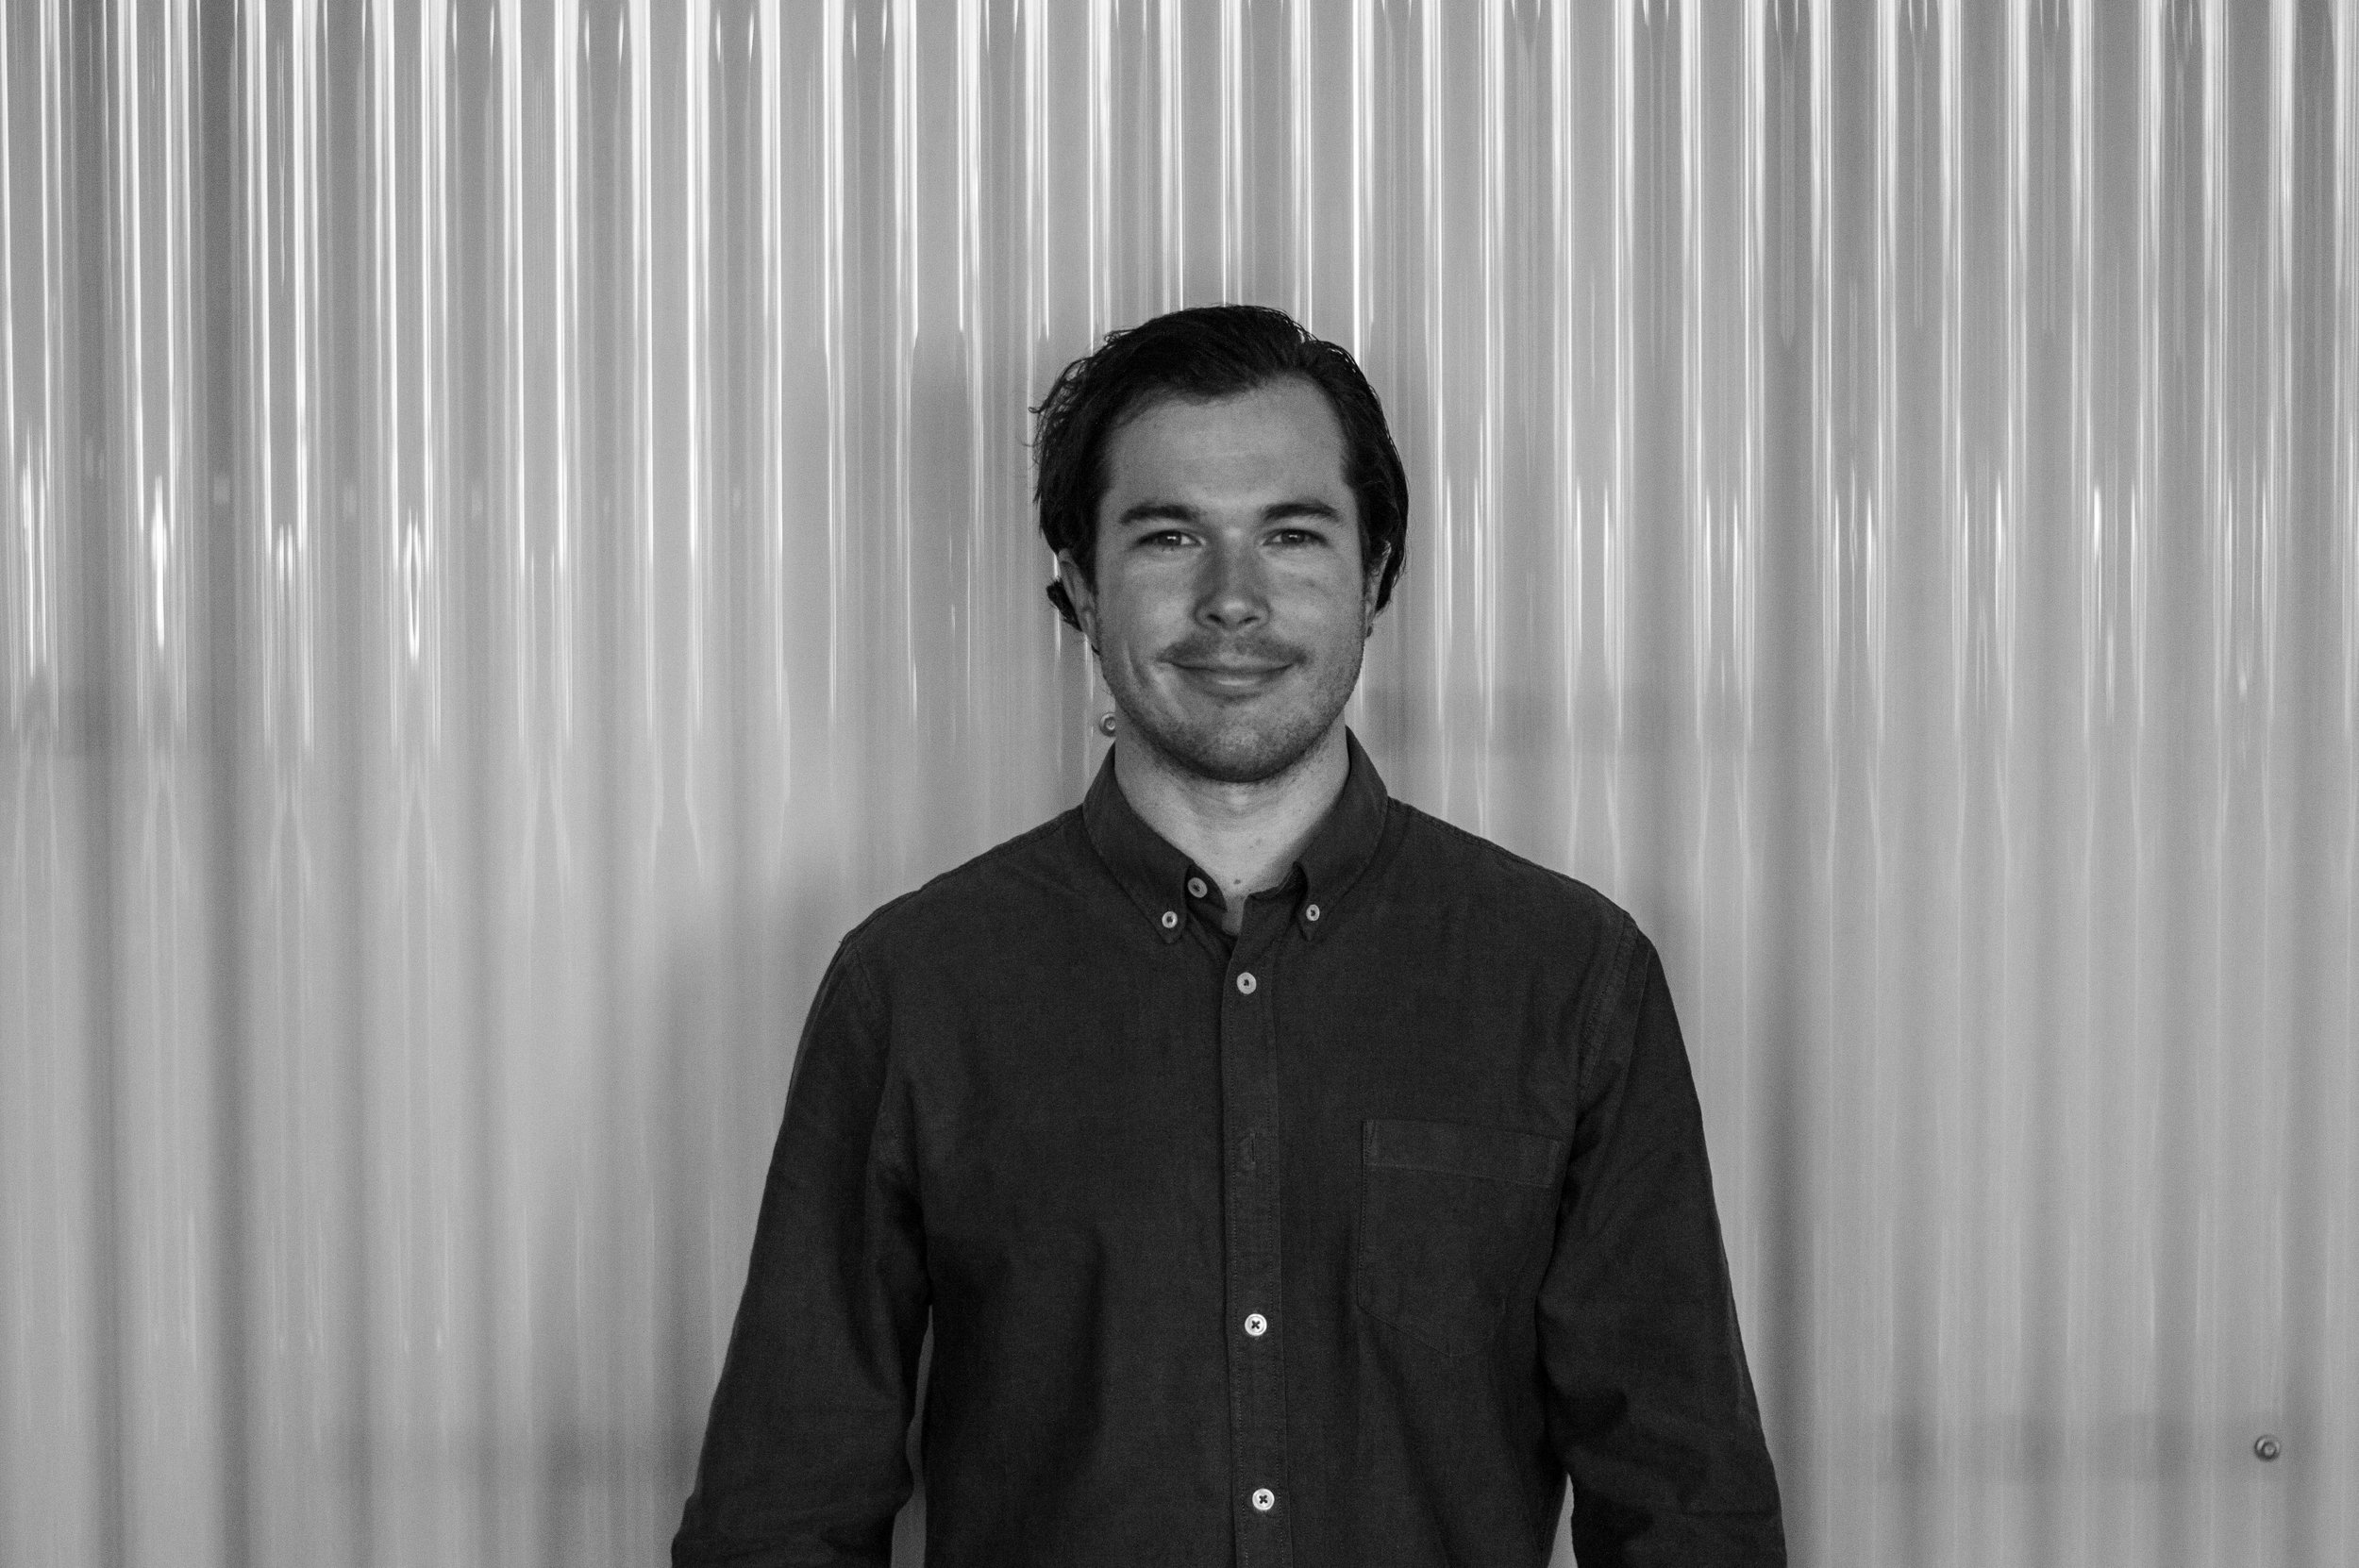 Ludovic Pilot  |  Graduate Architect